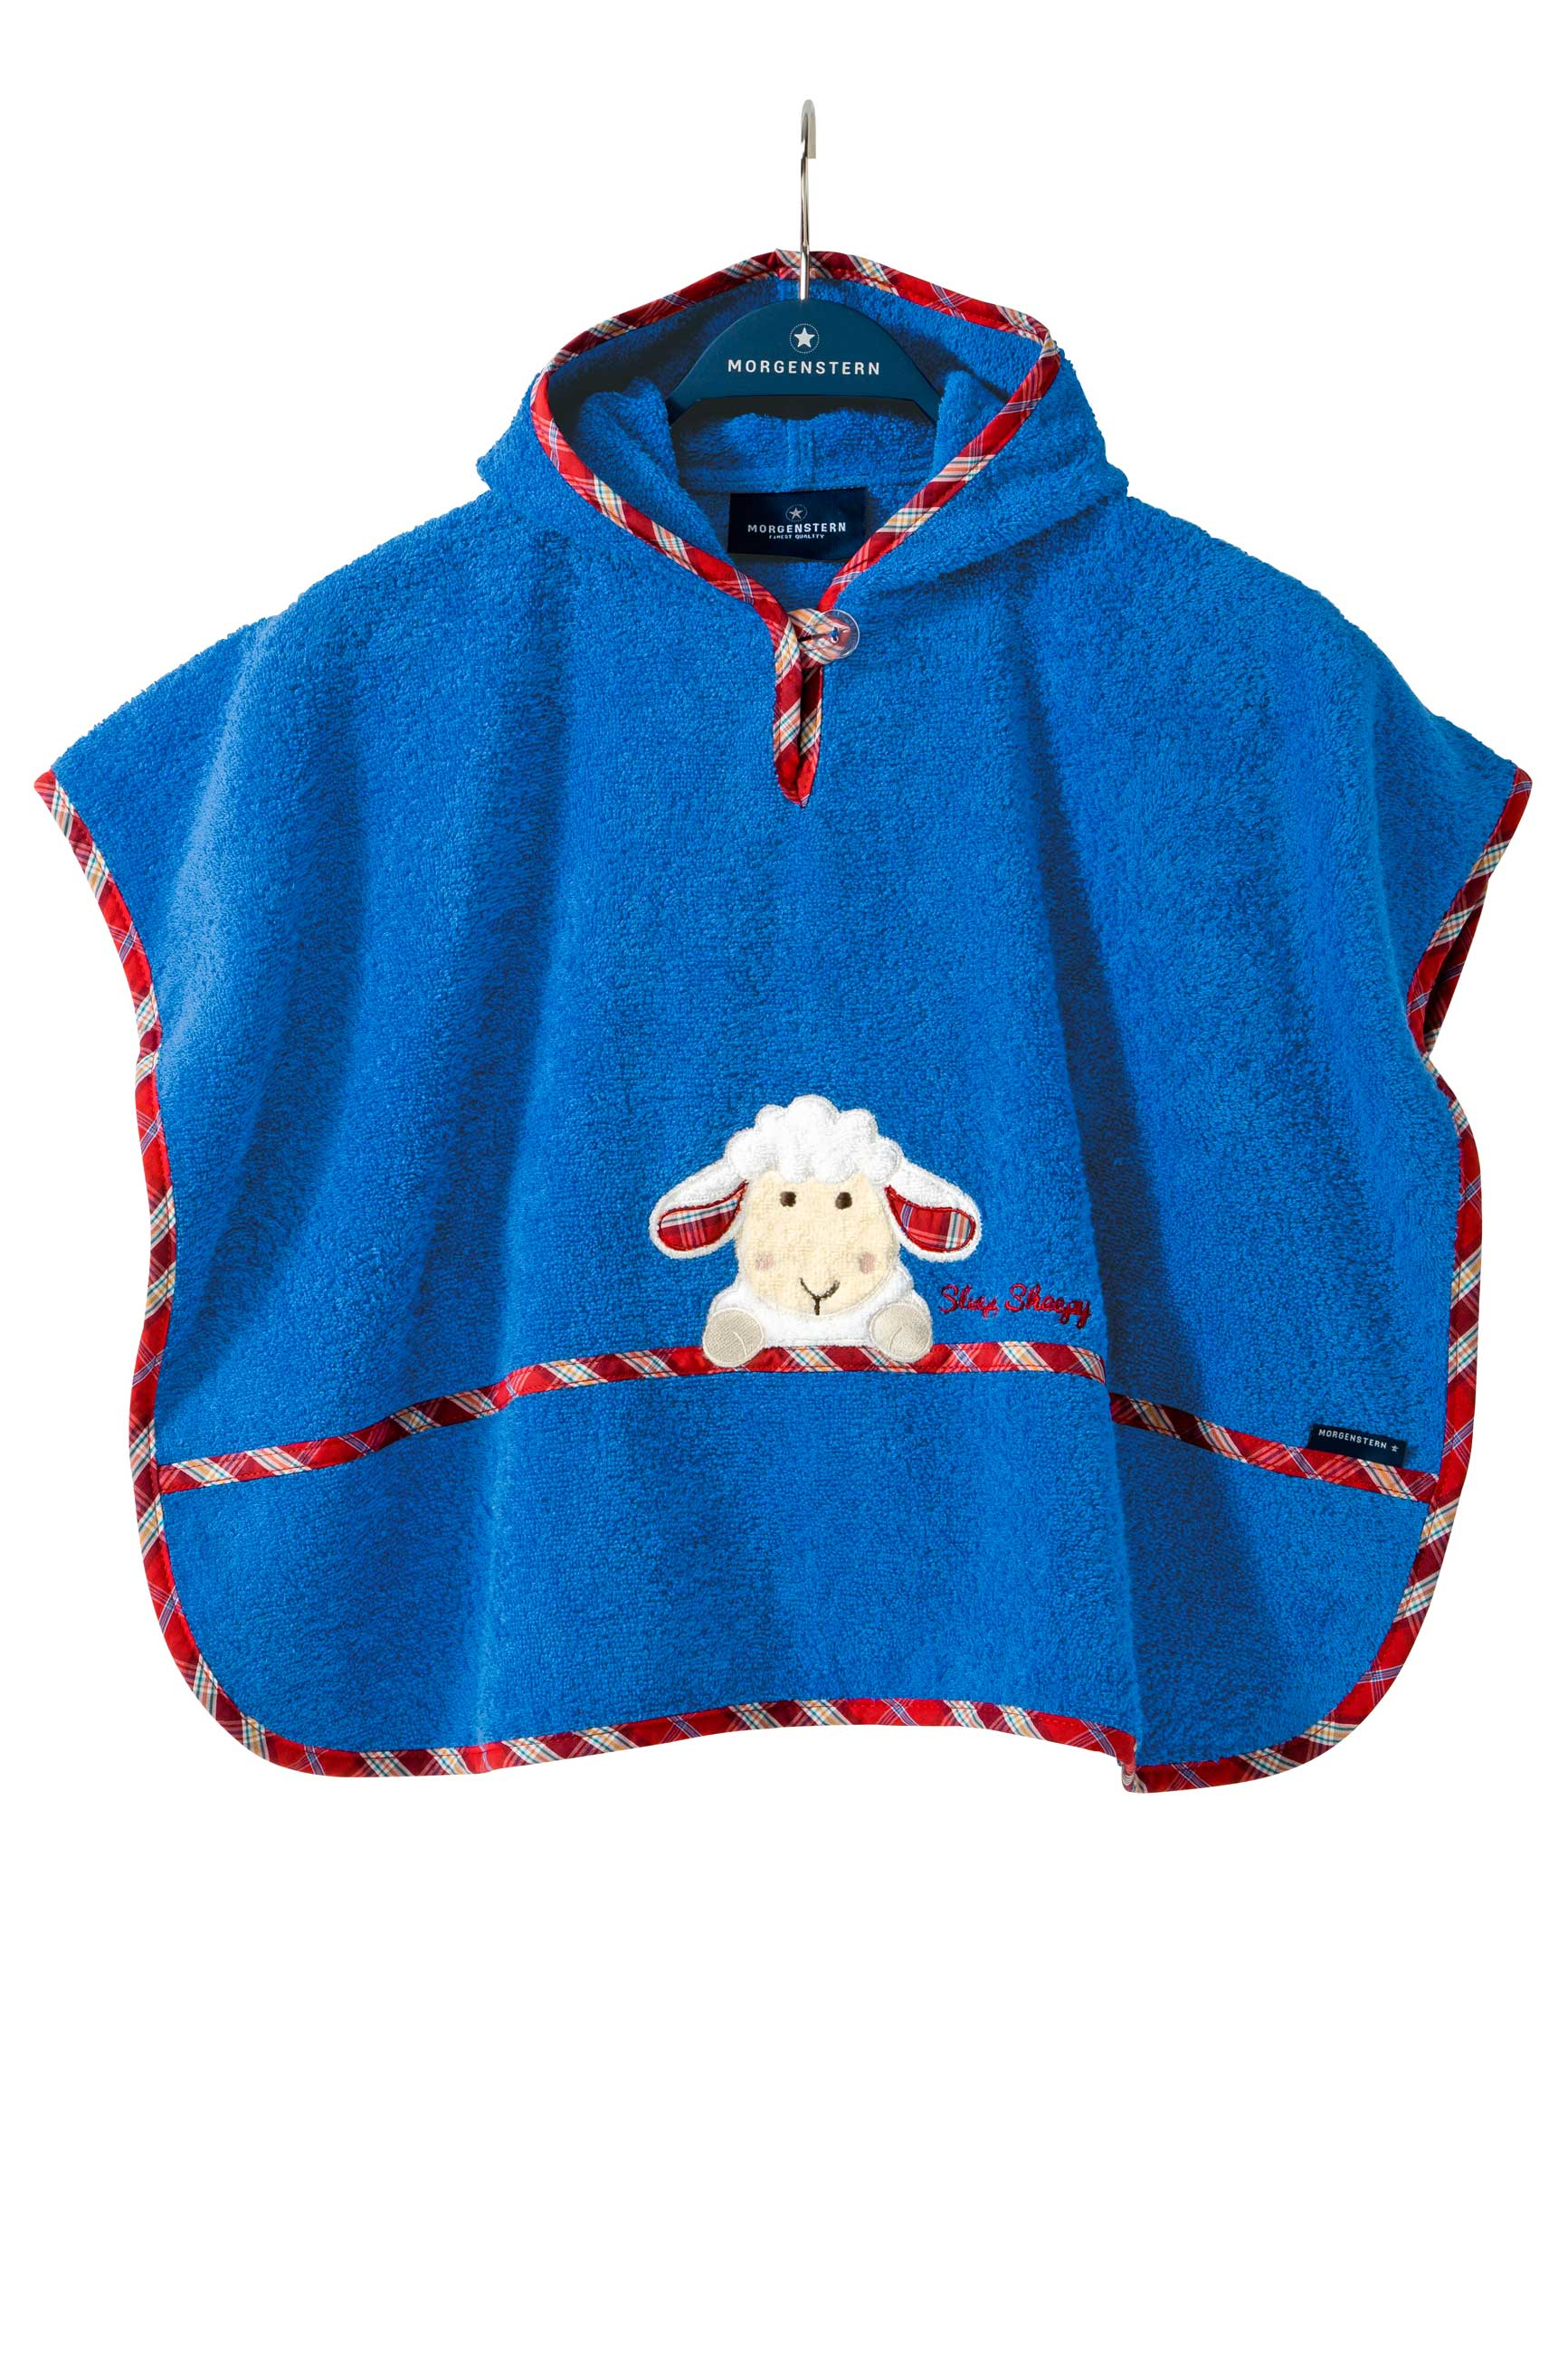 Baby Badeponcho Badeponcho Baby Baumwolle Blau Morgenstern